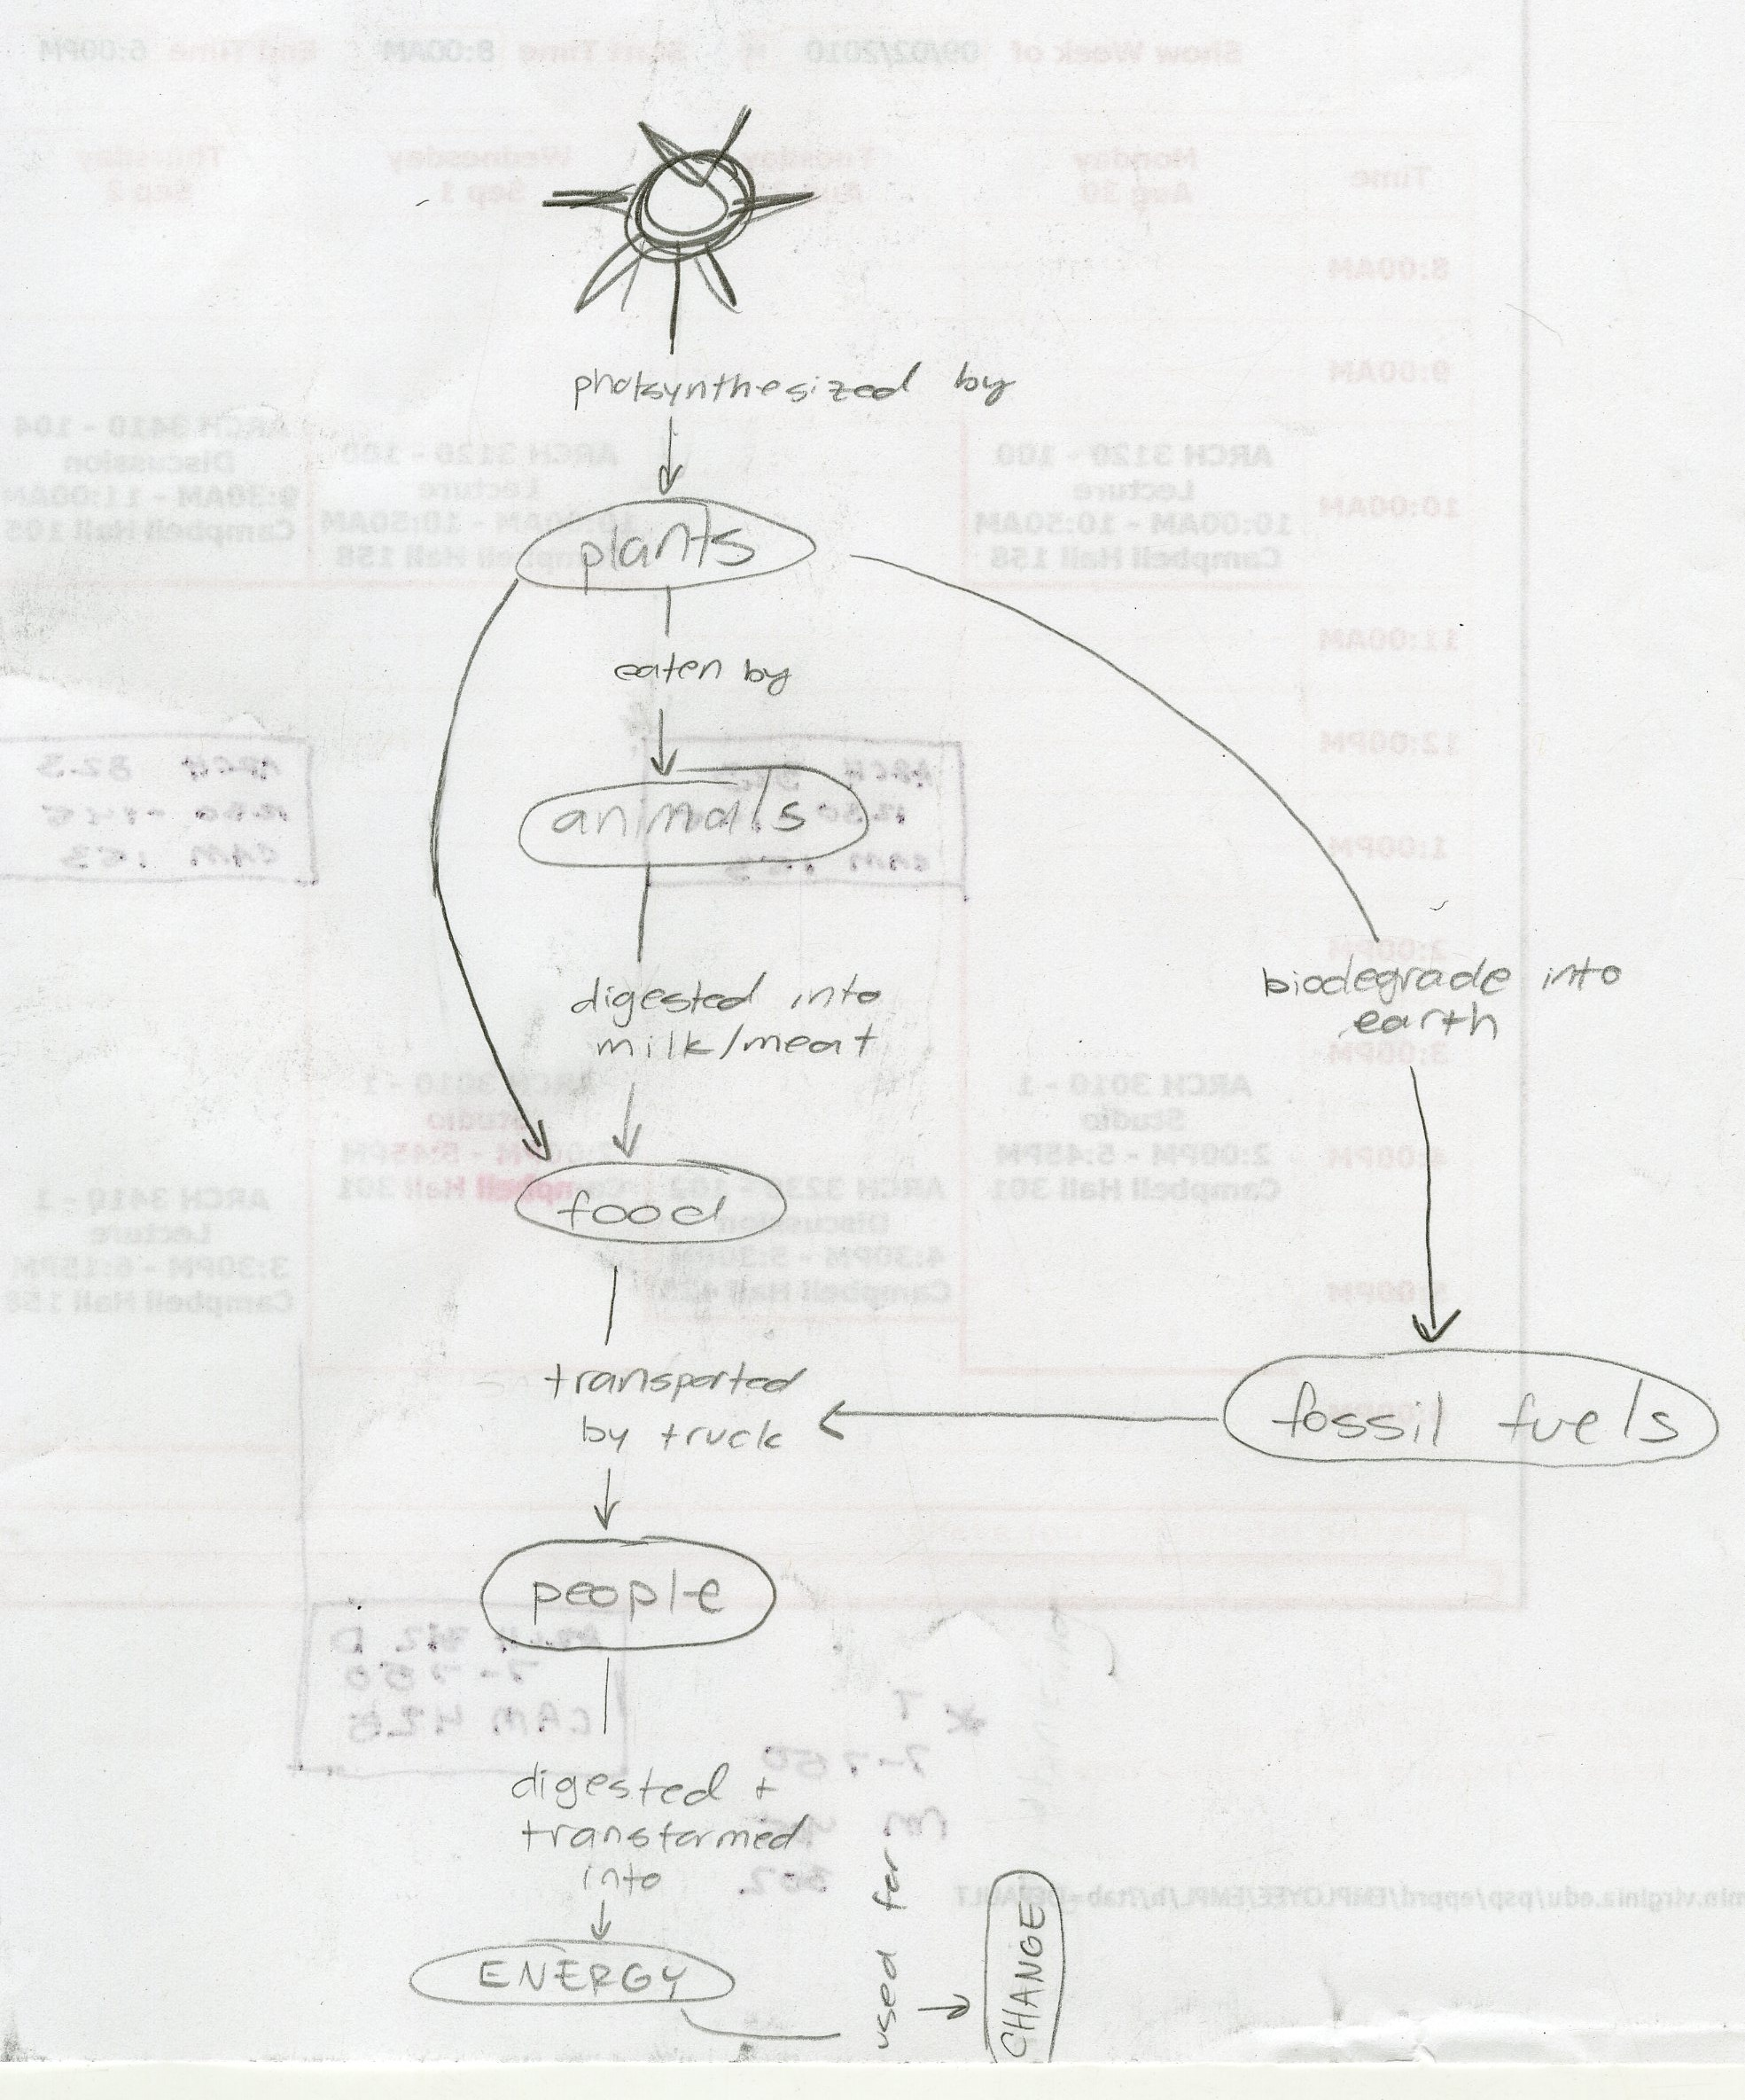 Lecture 8 24 Energy Diagram